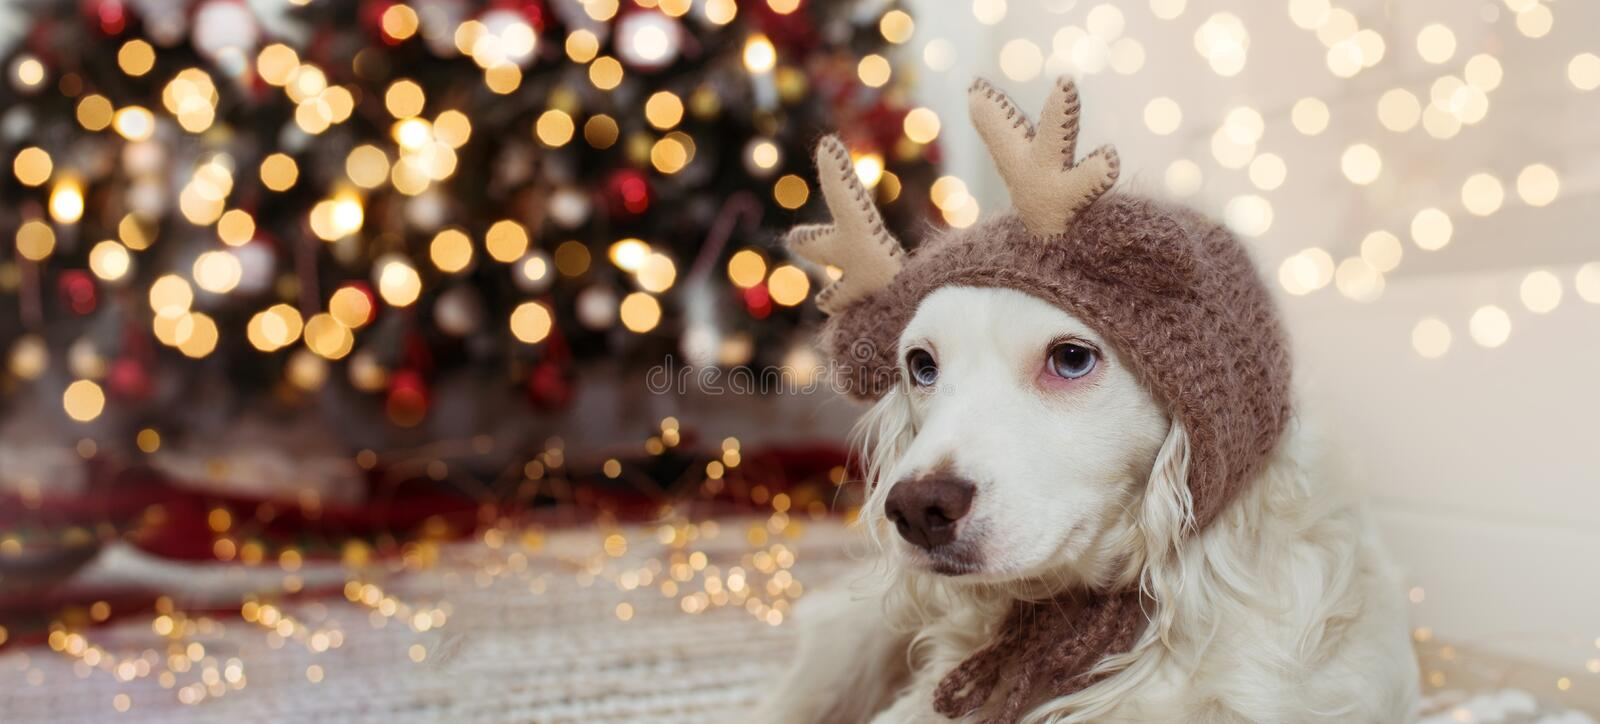 BANNER CUTE DOG UNDER CHRISTMAS TREE LIGHTS CELEBRATING HOLIDAYS WEARING A REINDEER ANTLERS HAT royalty free stock image